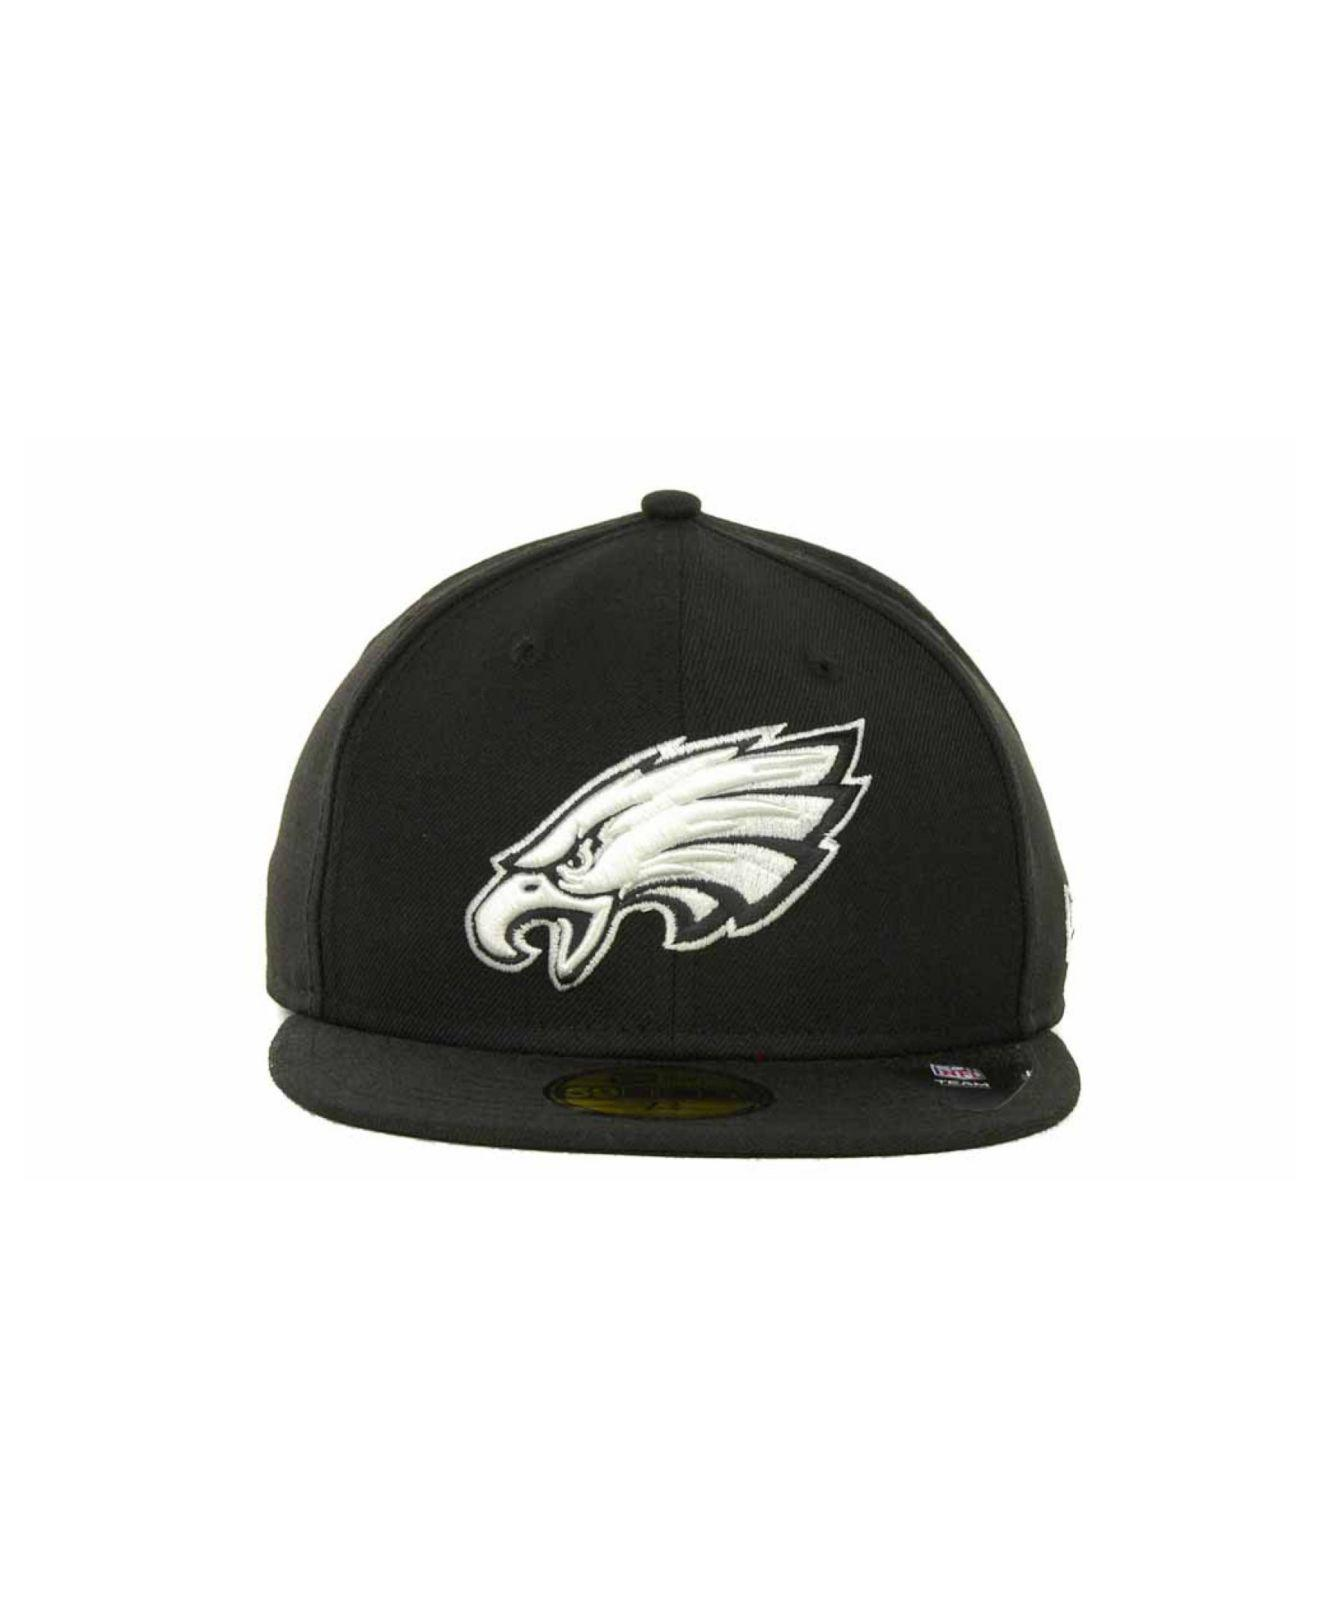 new products 2e37c a175a Lyst - KTZ Philadelphia Eagles 59fifty Cap in Black for Men